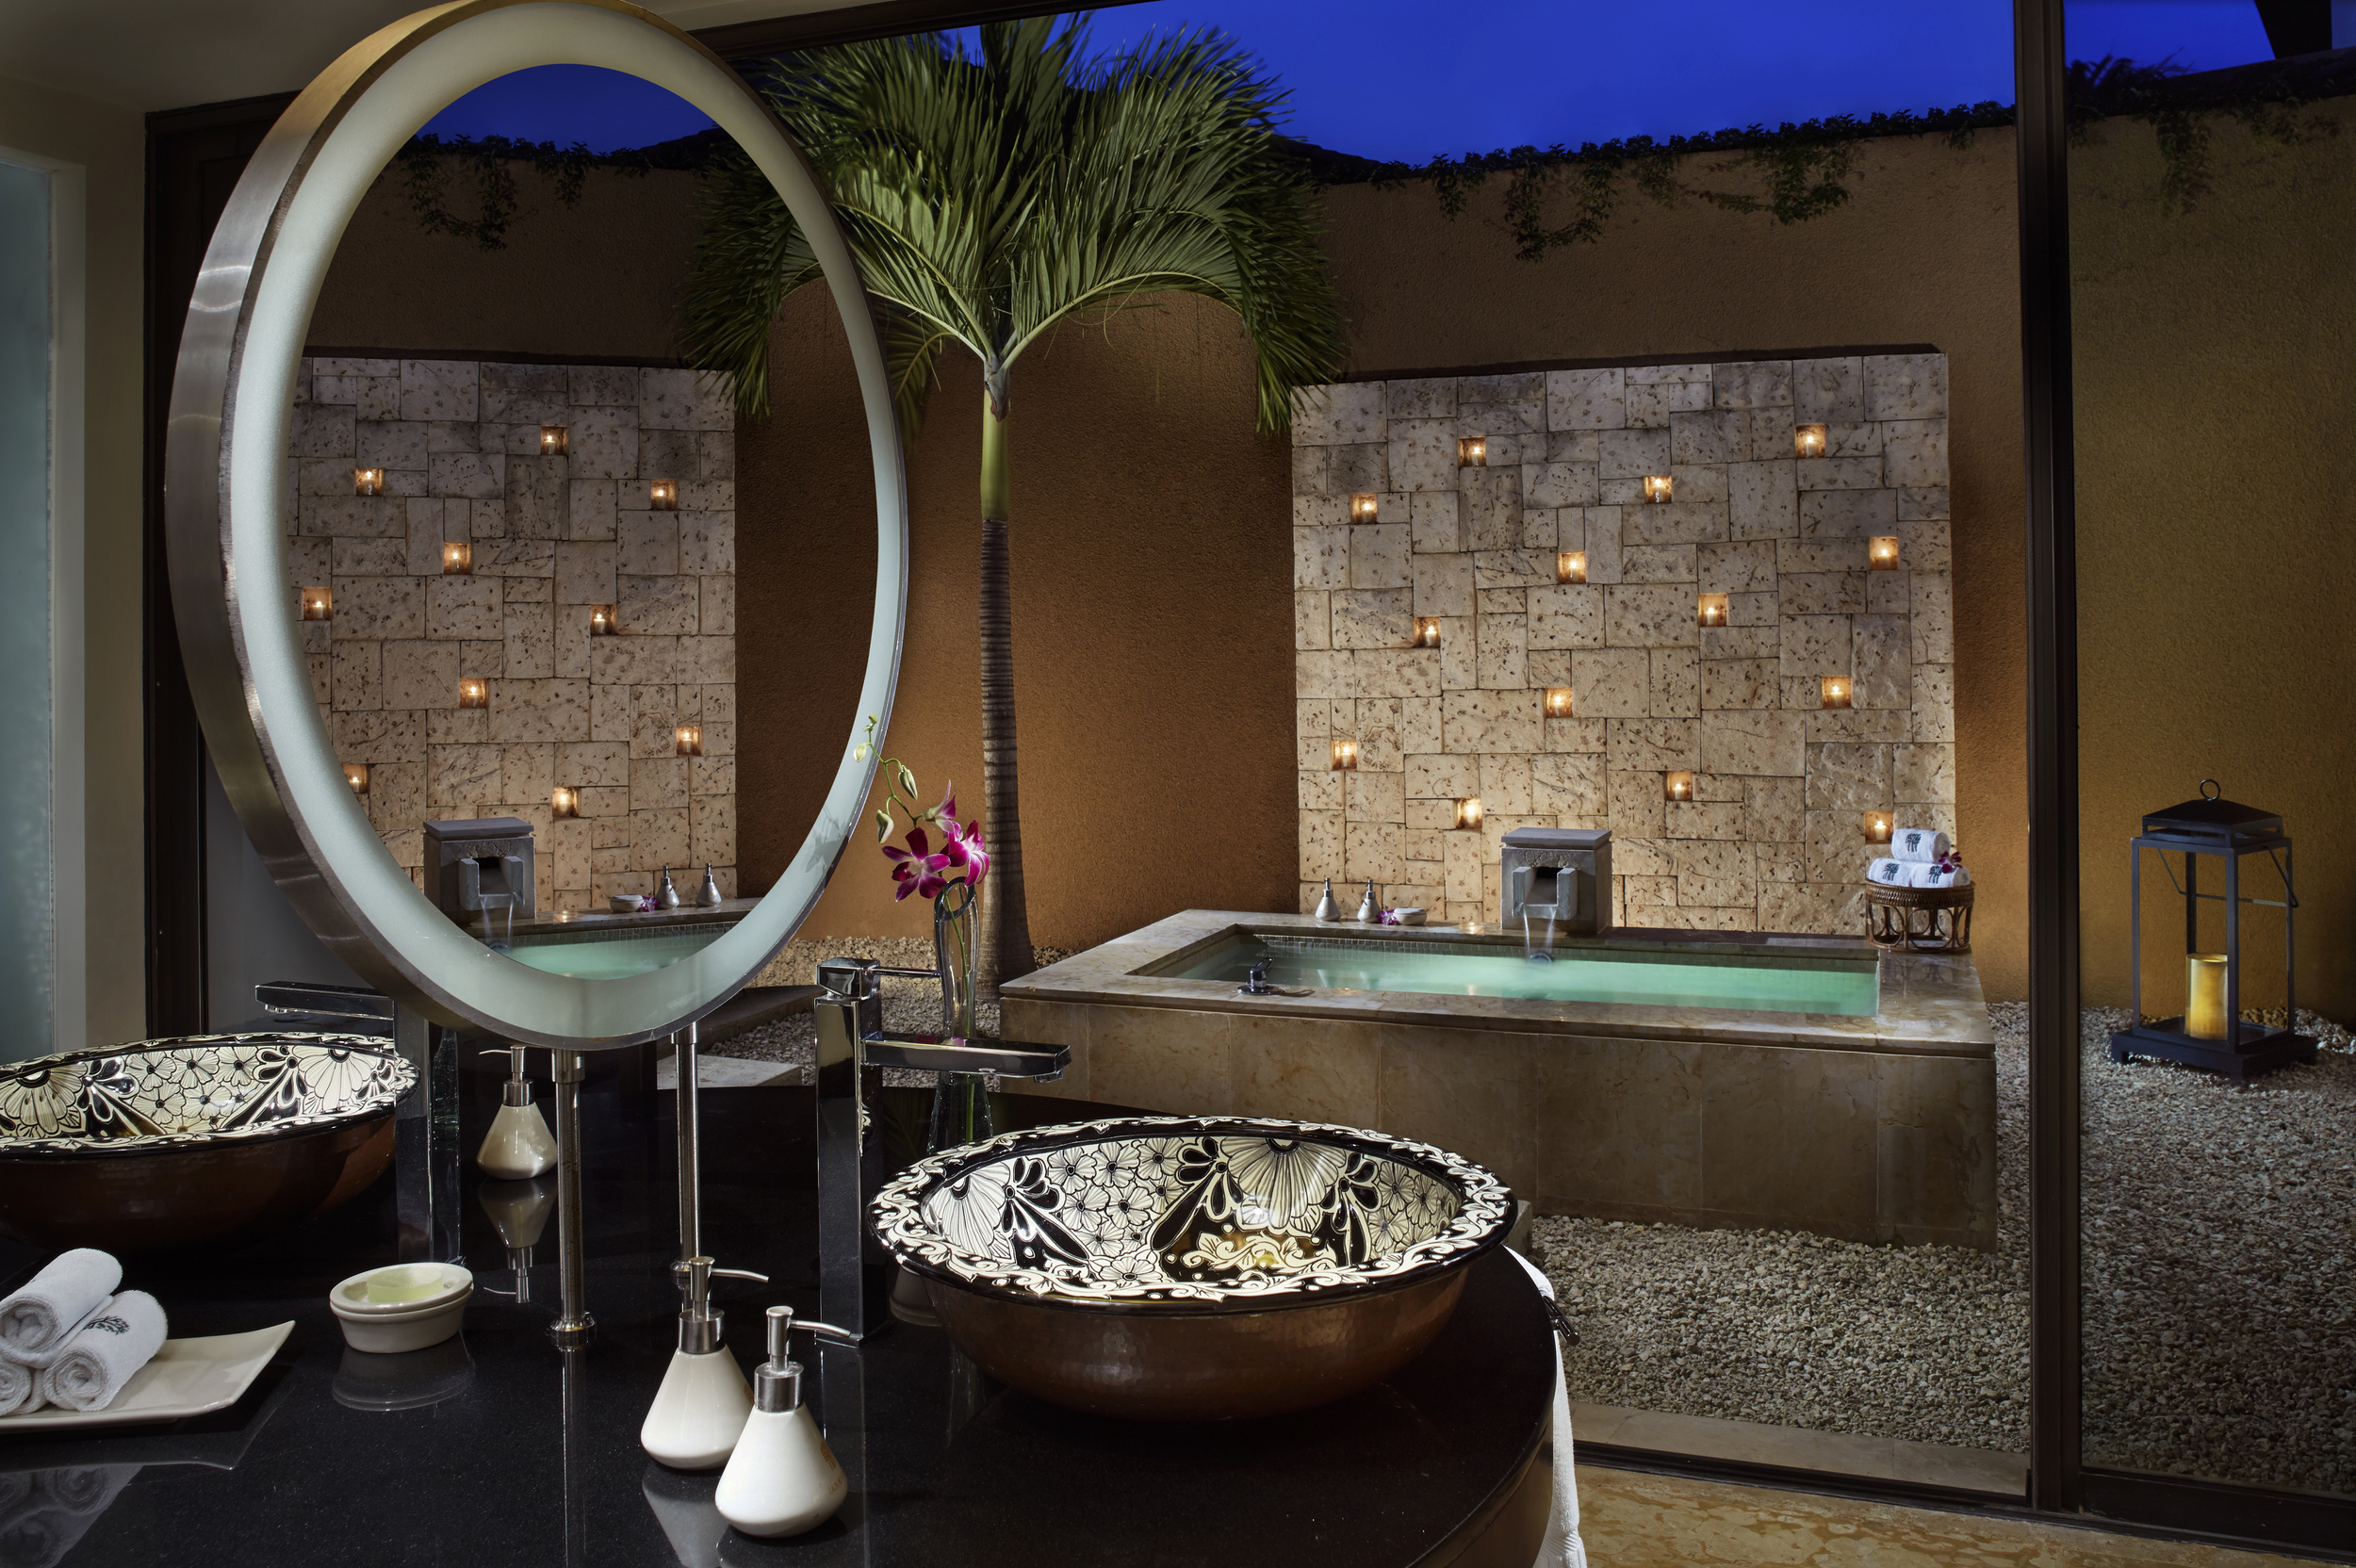 World's Most Over-the-top Hotel Bathrooms